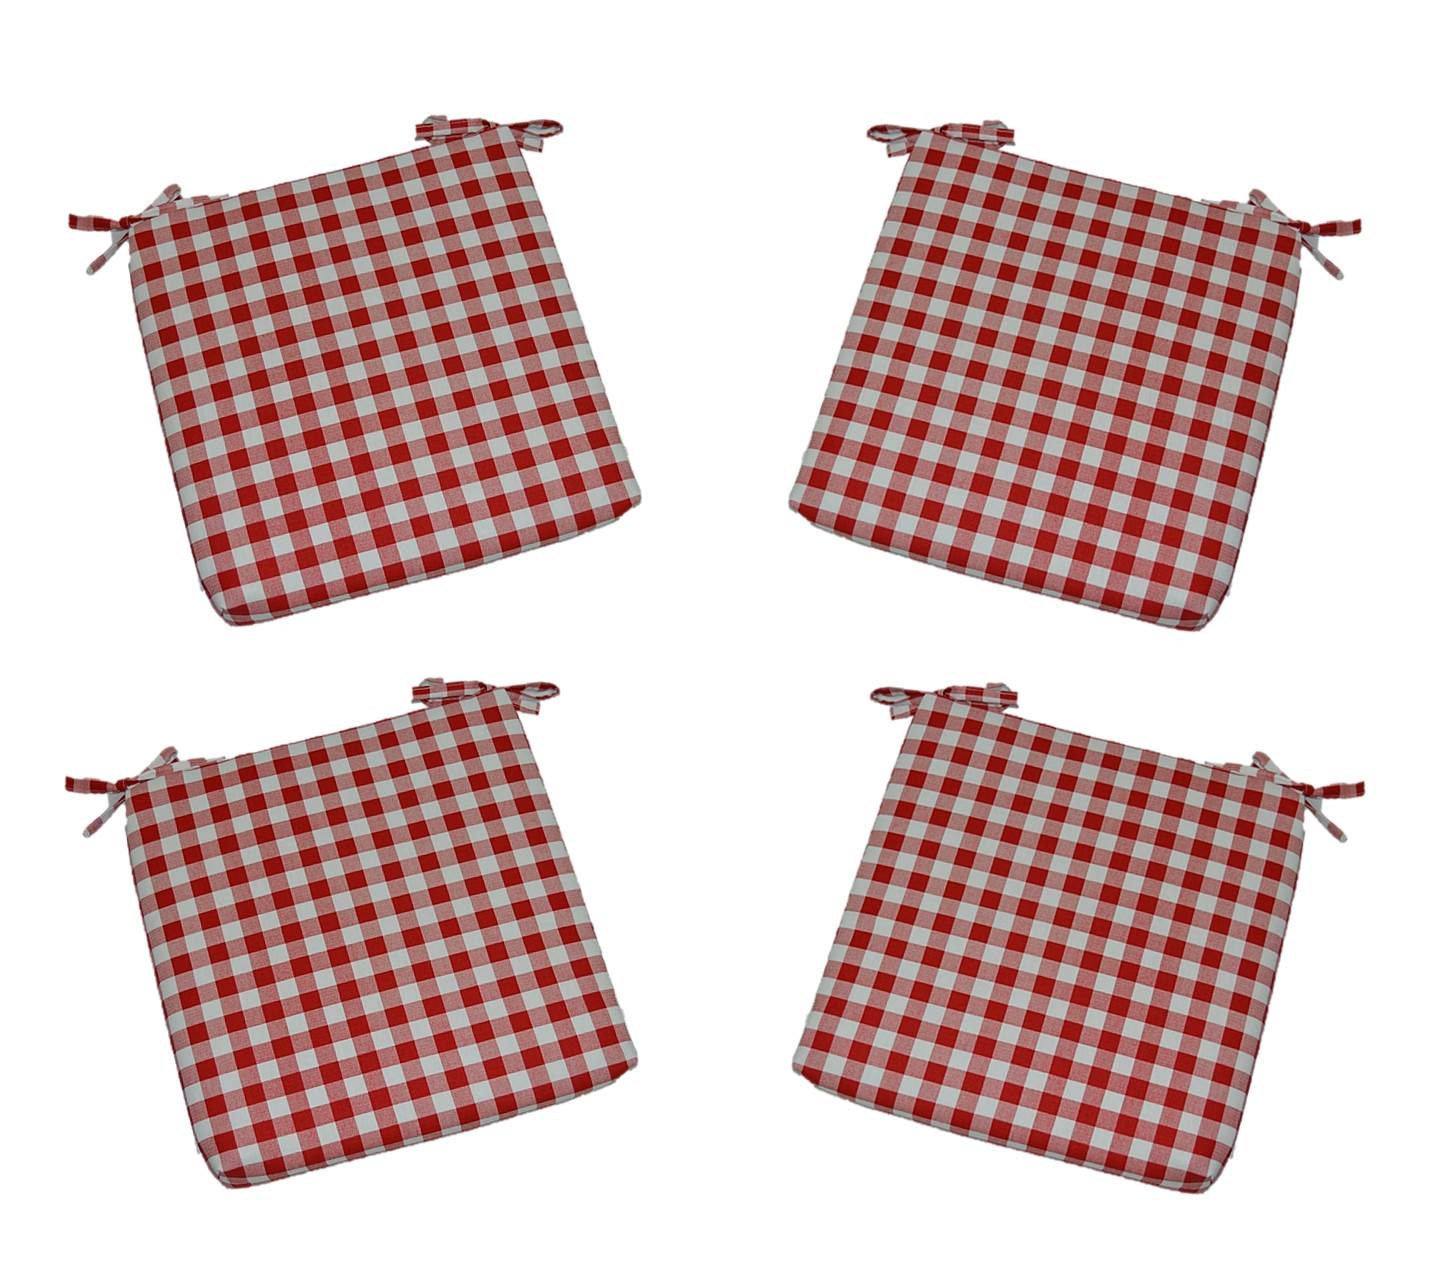 Set of 4 Indoor Universal Foam Seat Cushions w ties Red : ilfullxfull8945314999reo from www.etsy.com size 1429 x 1266 jpeg 276kB